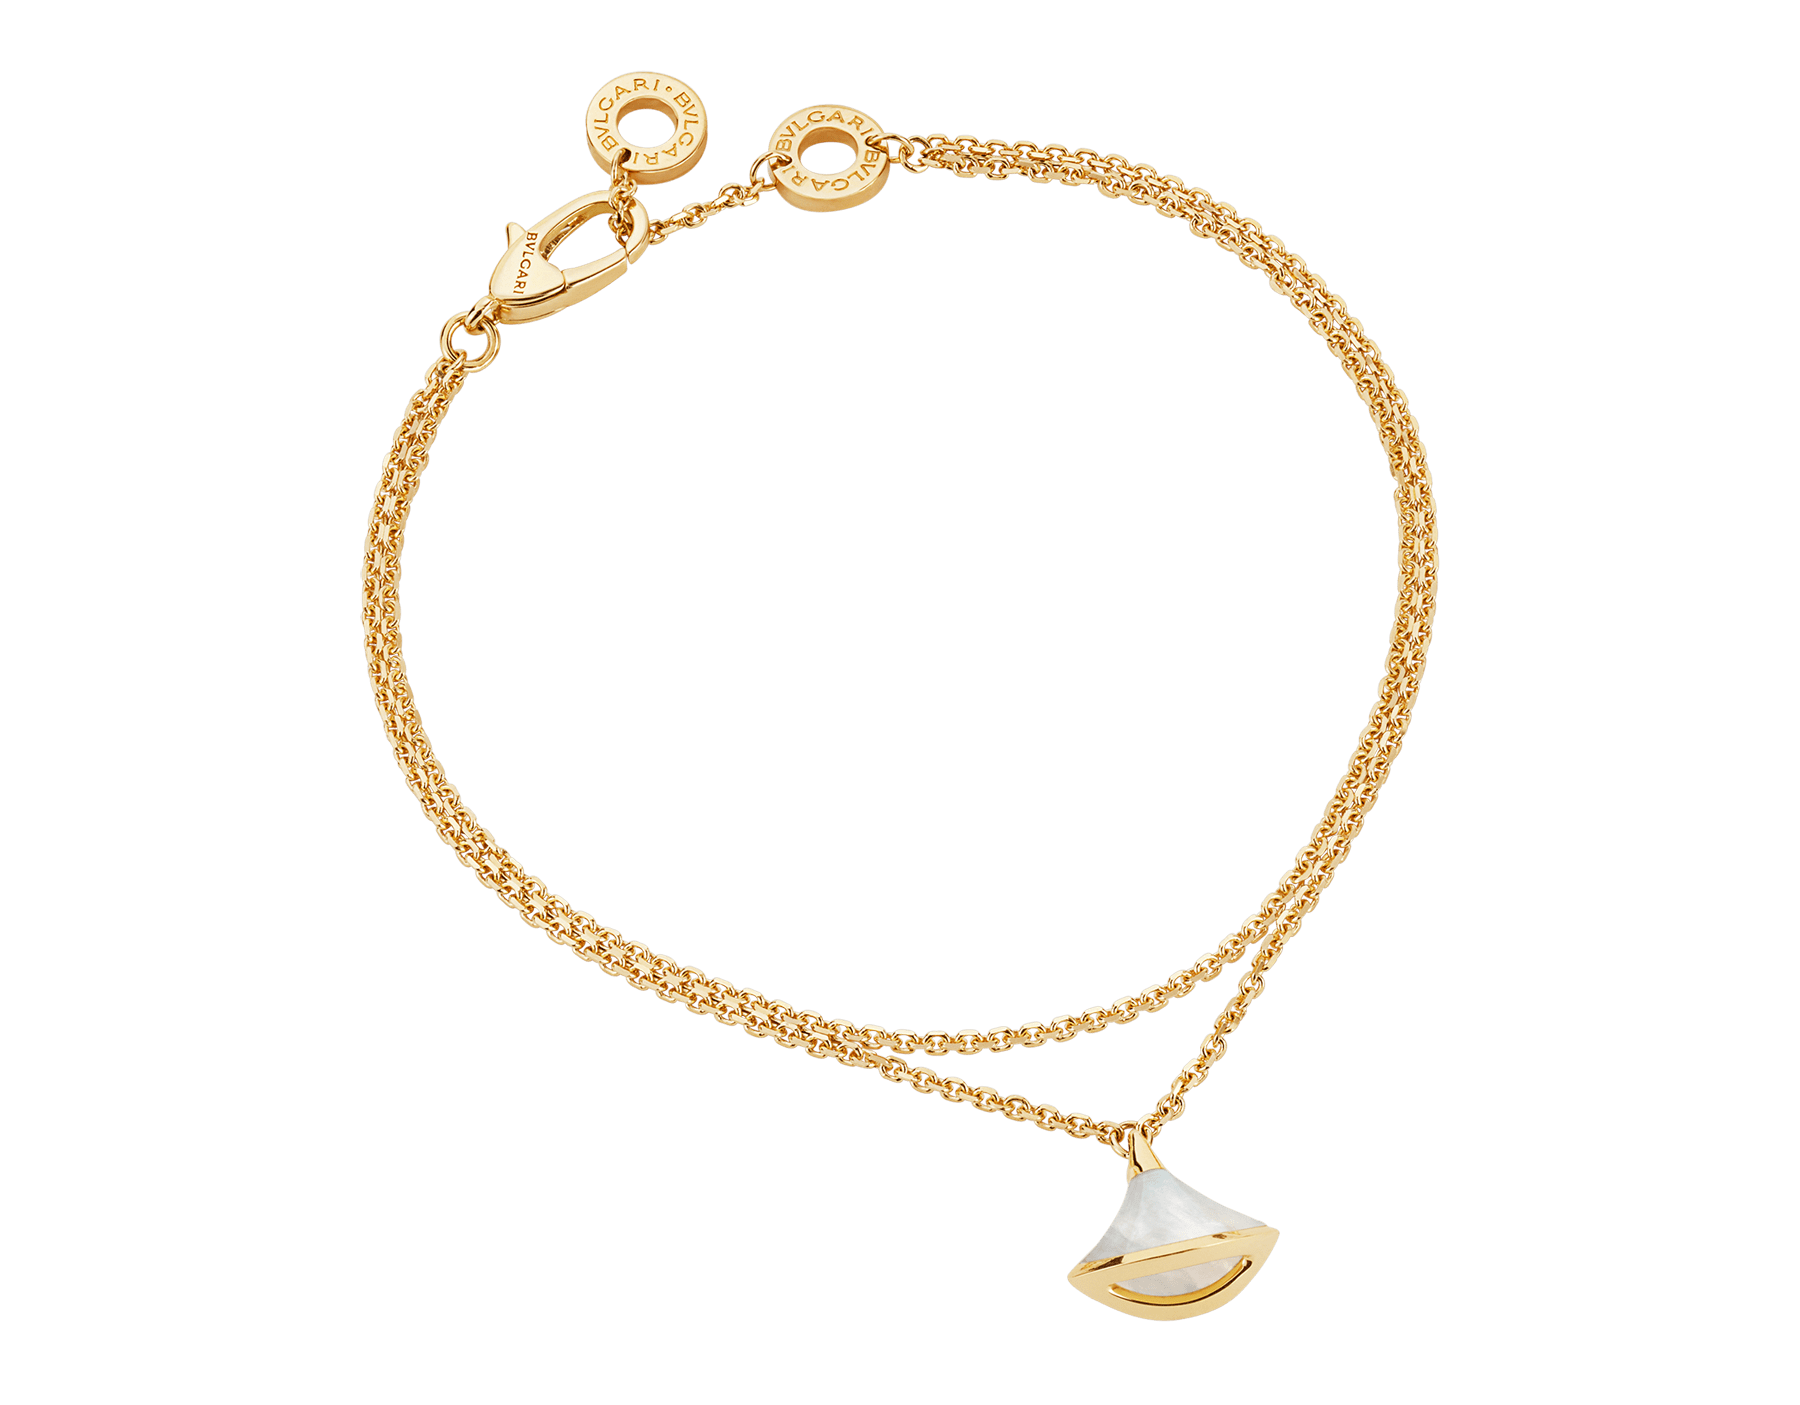 DIVAS' DREAM 18 kt yellow gold bracelet with pendant set with a mother-of-pearl element BR858988 image 1